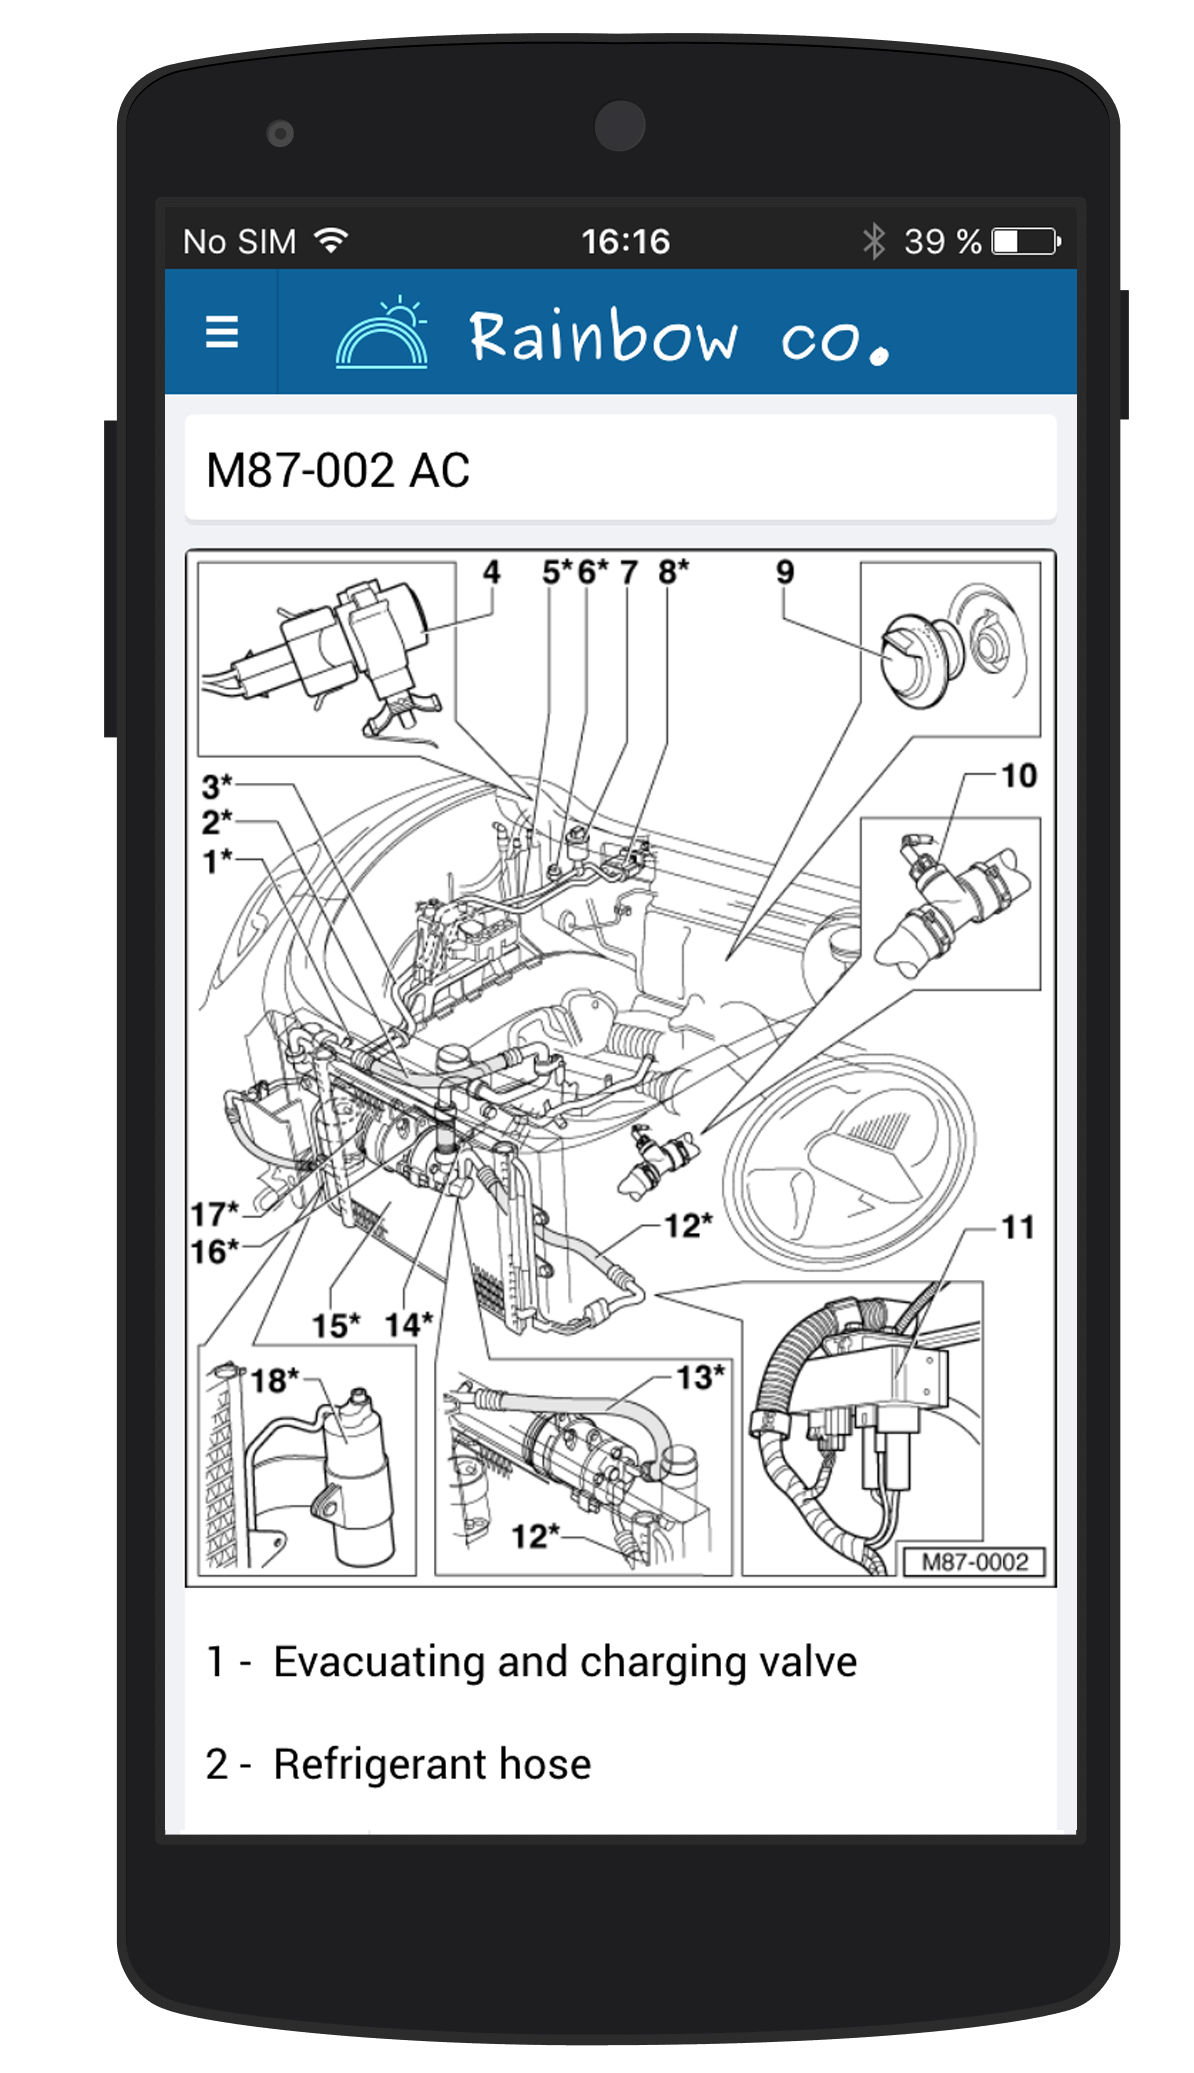 Drawing manuals app. Field workoforce effortix mobile